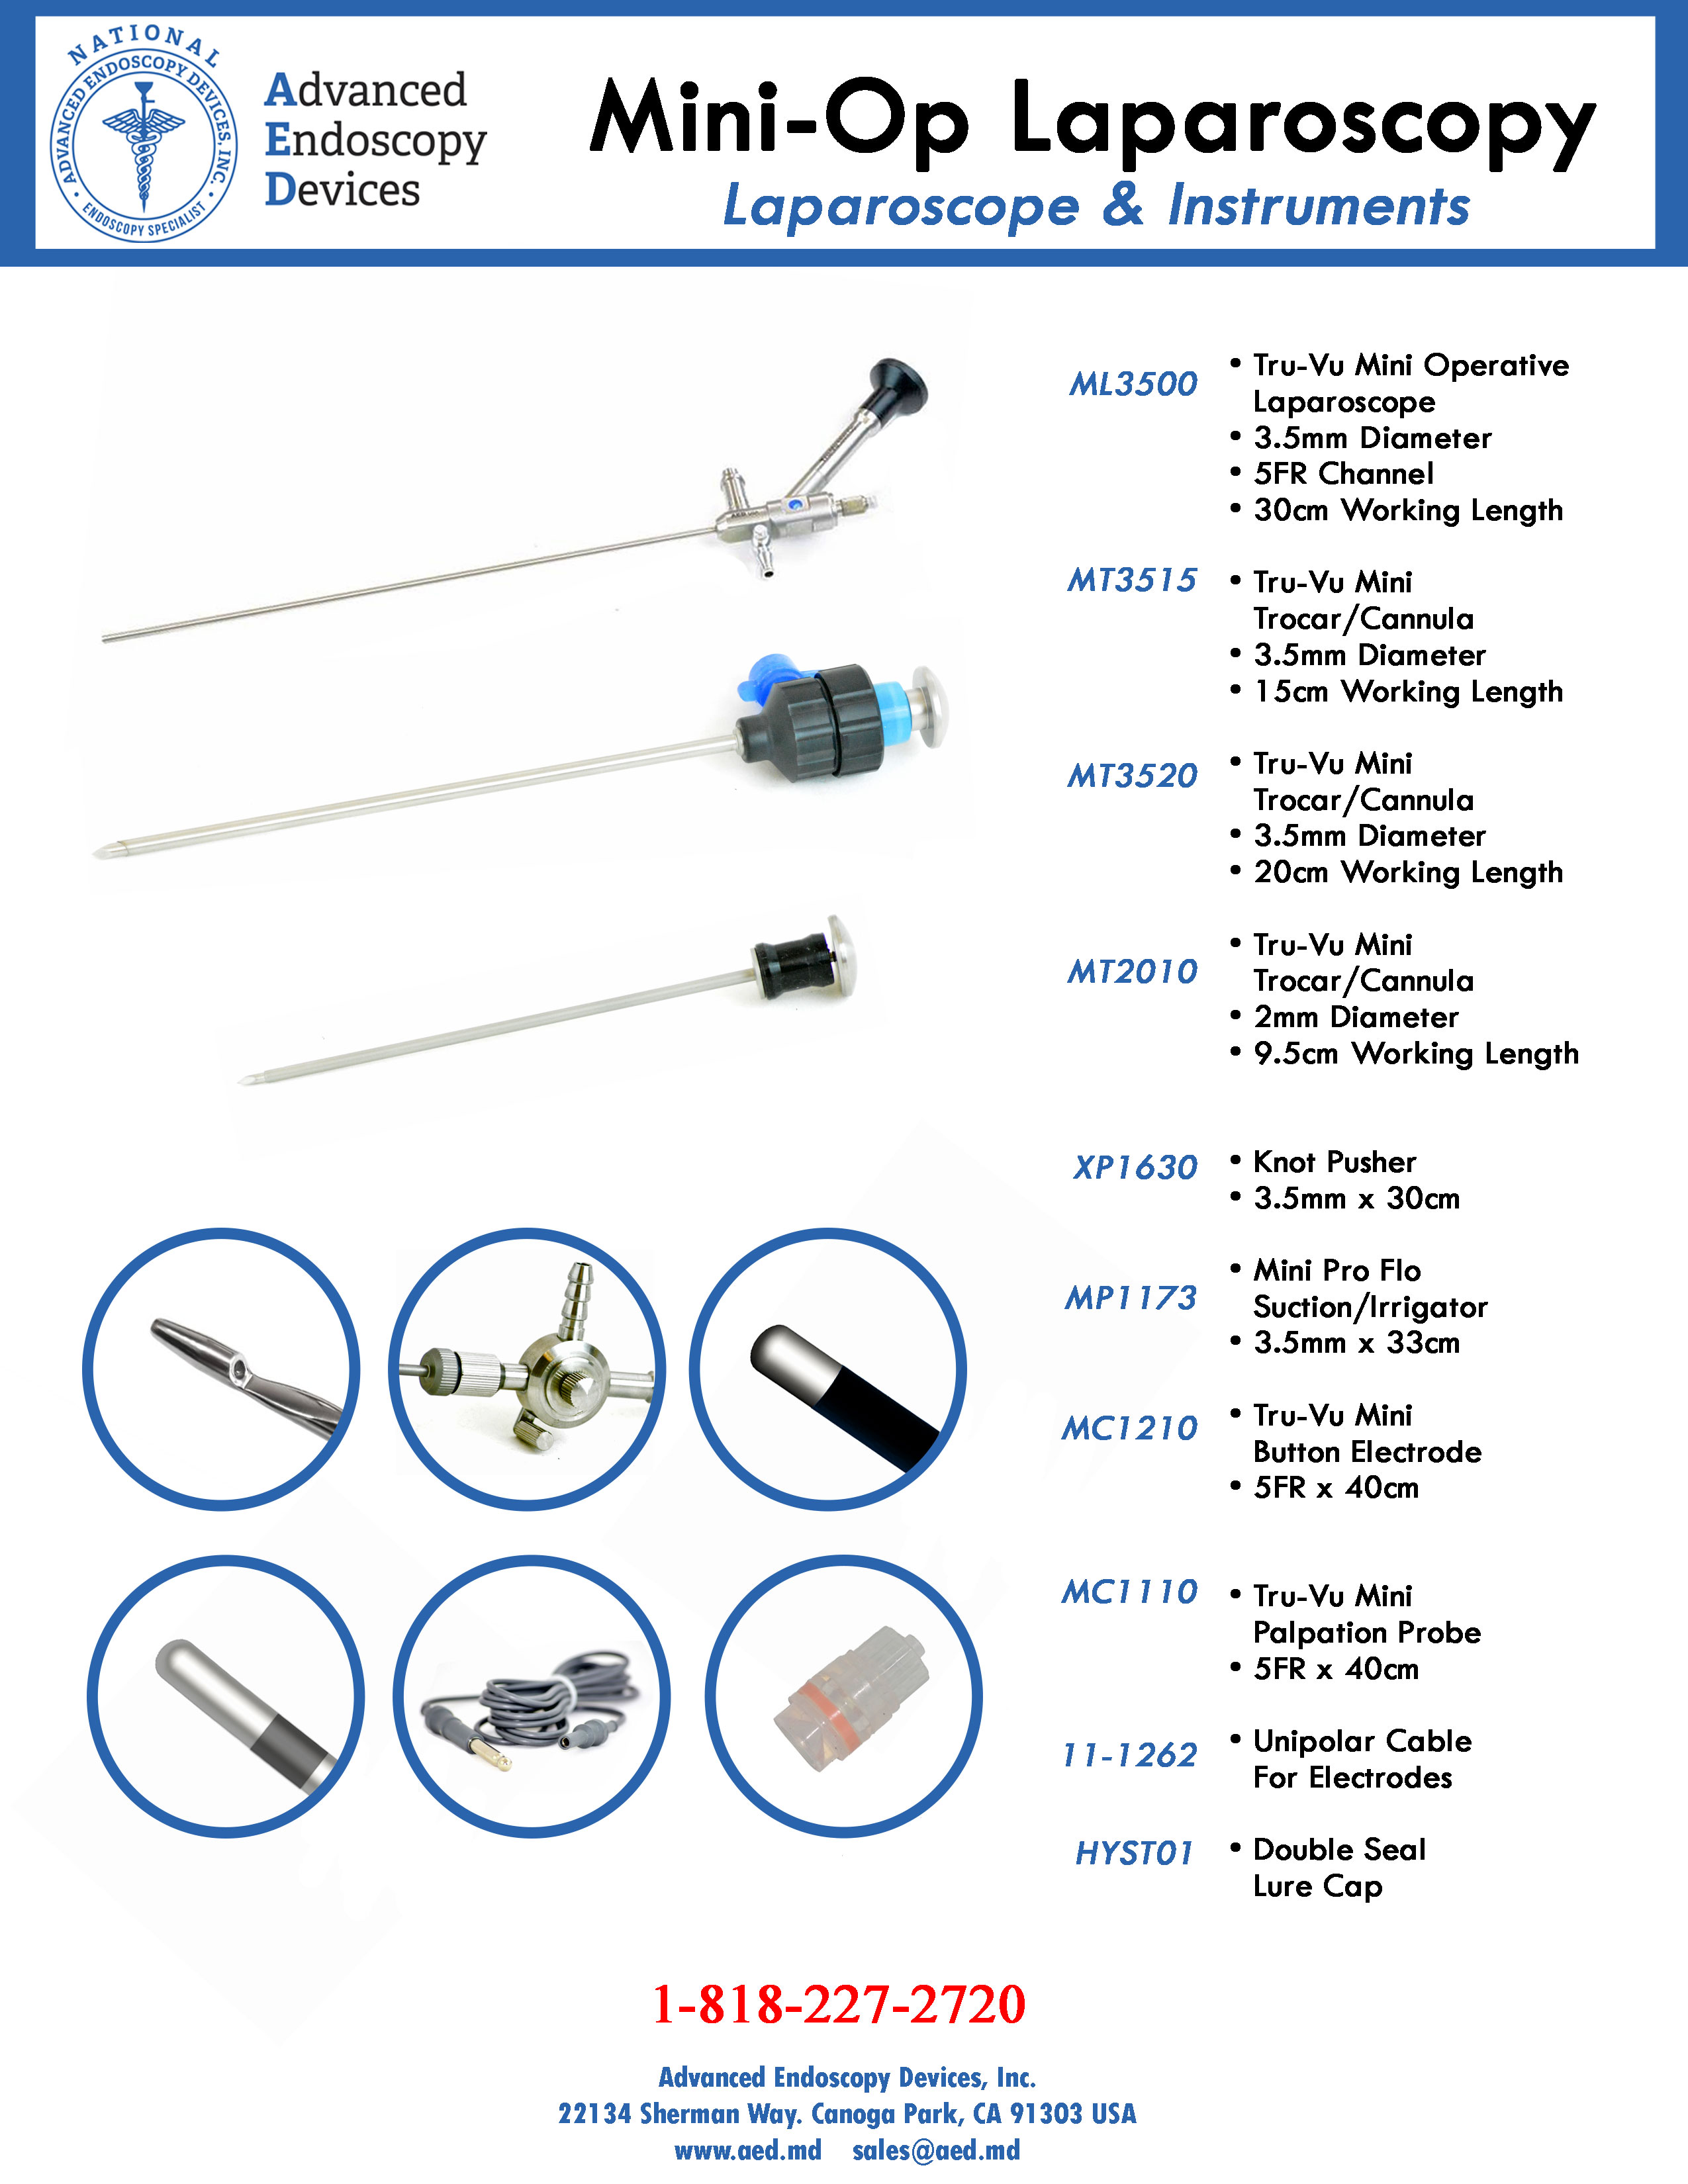 Mini-Op Laparoscopy Scopes and Instruments Product Page